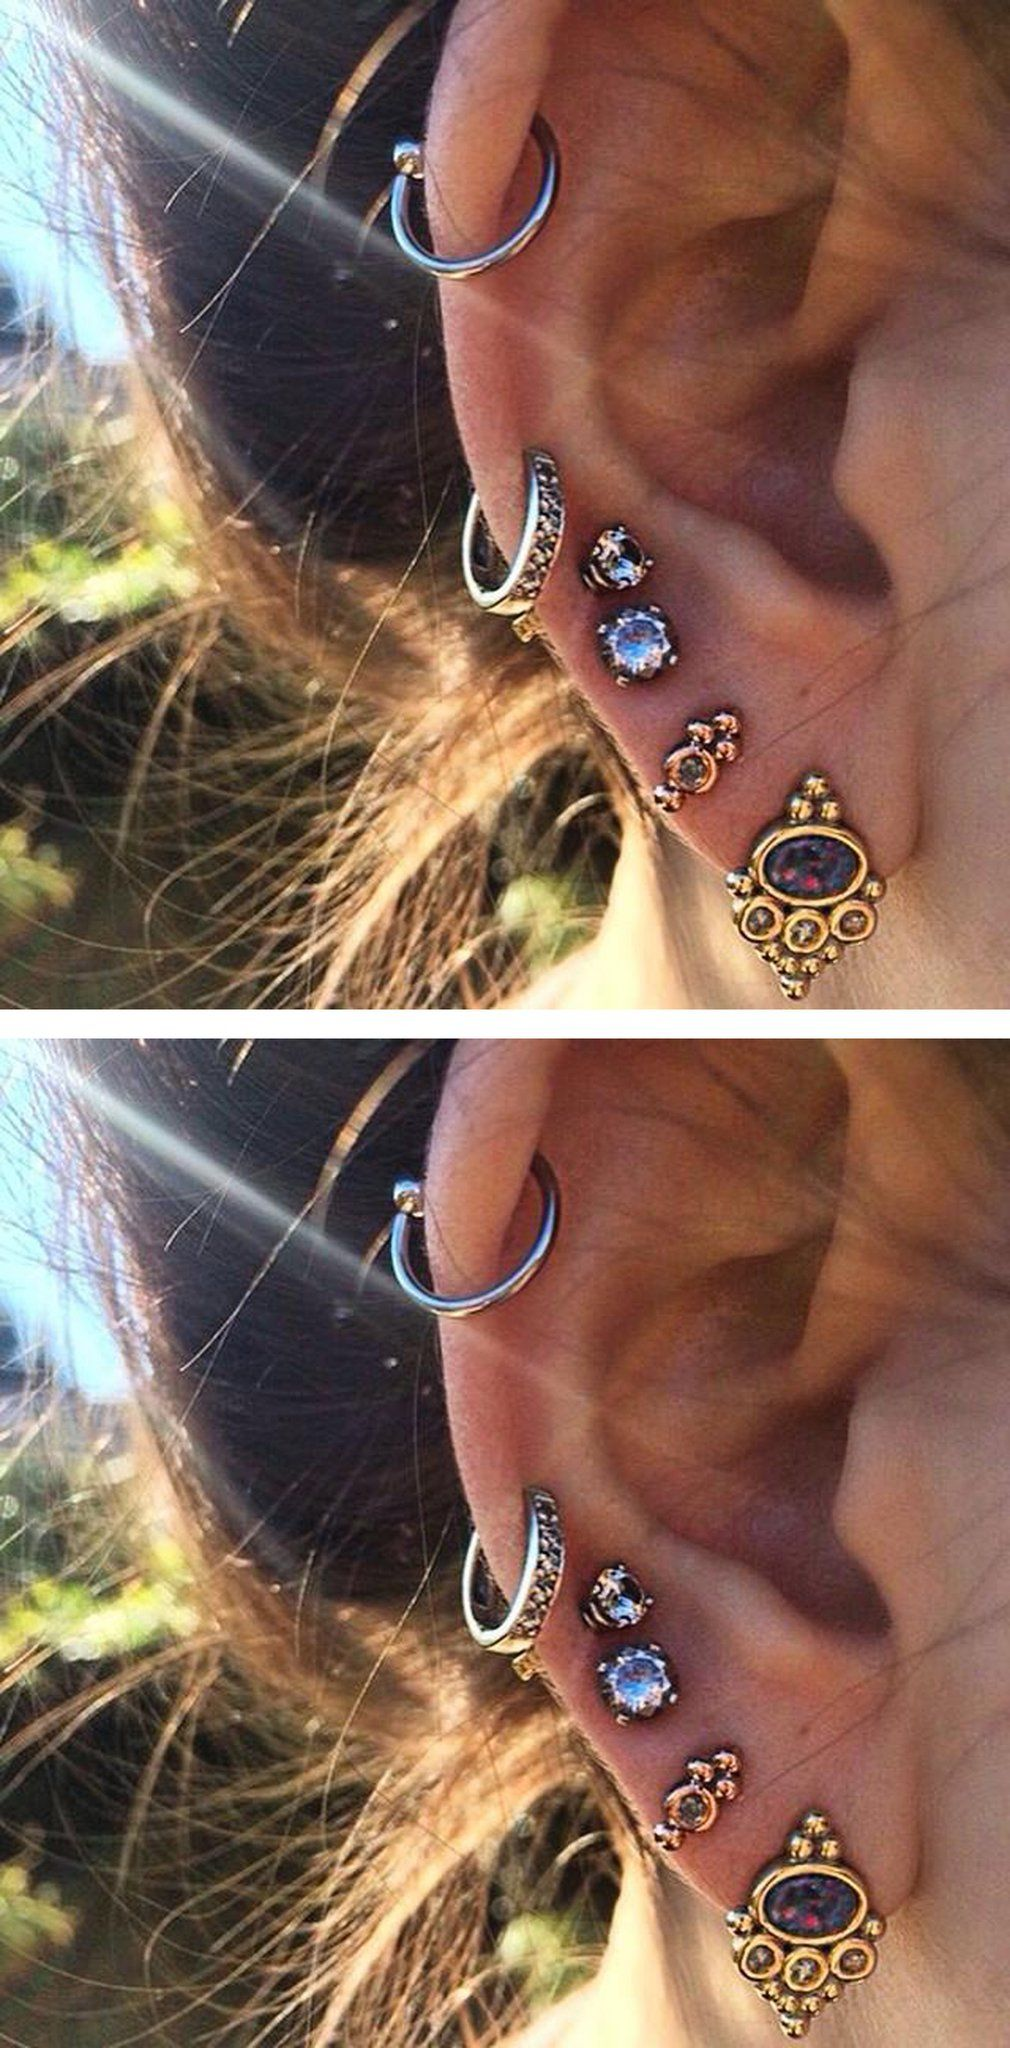 Piercing from nose to ear  Badass Multiple Ear Piercing Ideas for Cartilage Top Ear  Cute